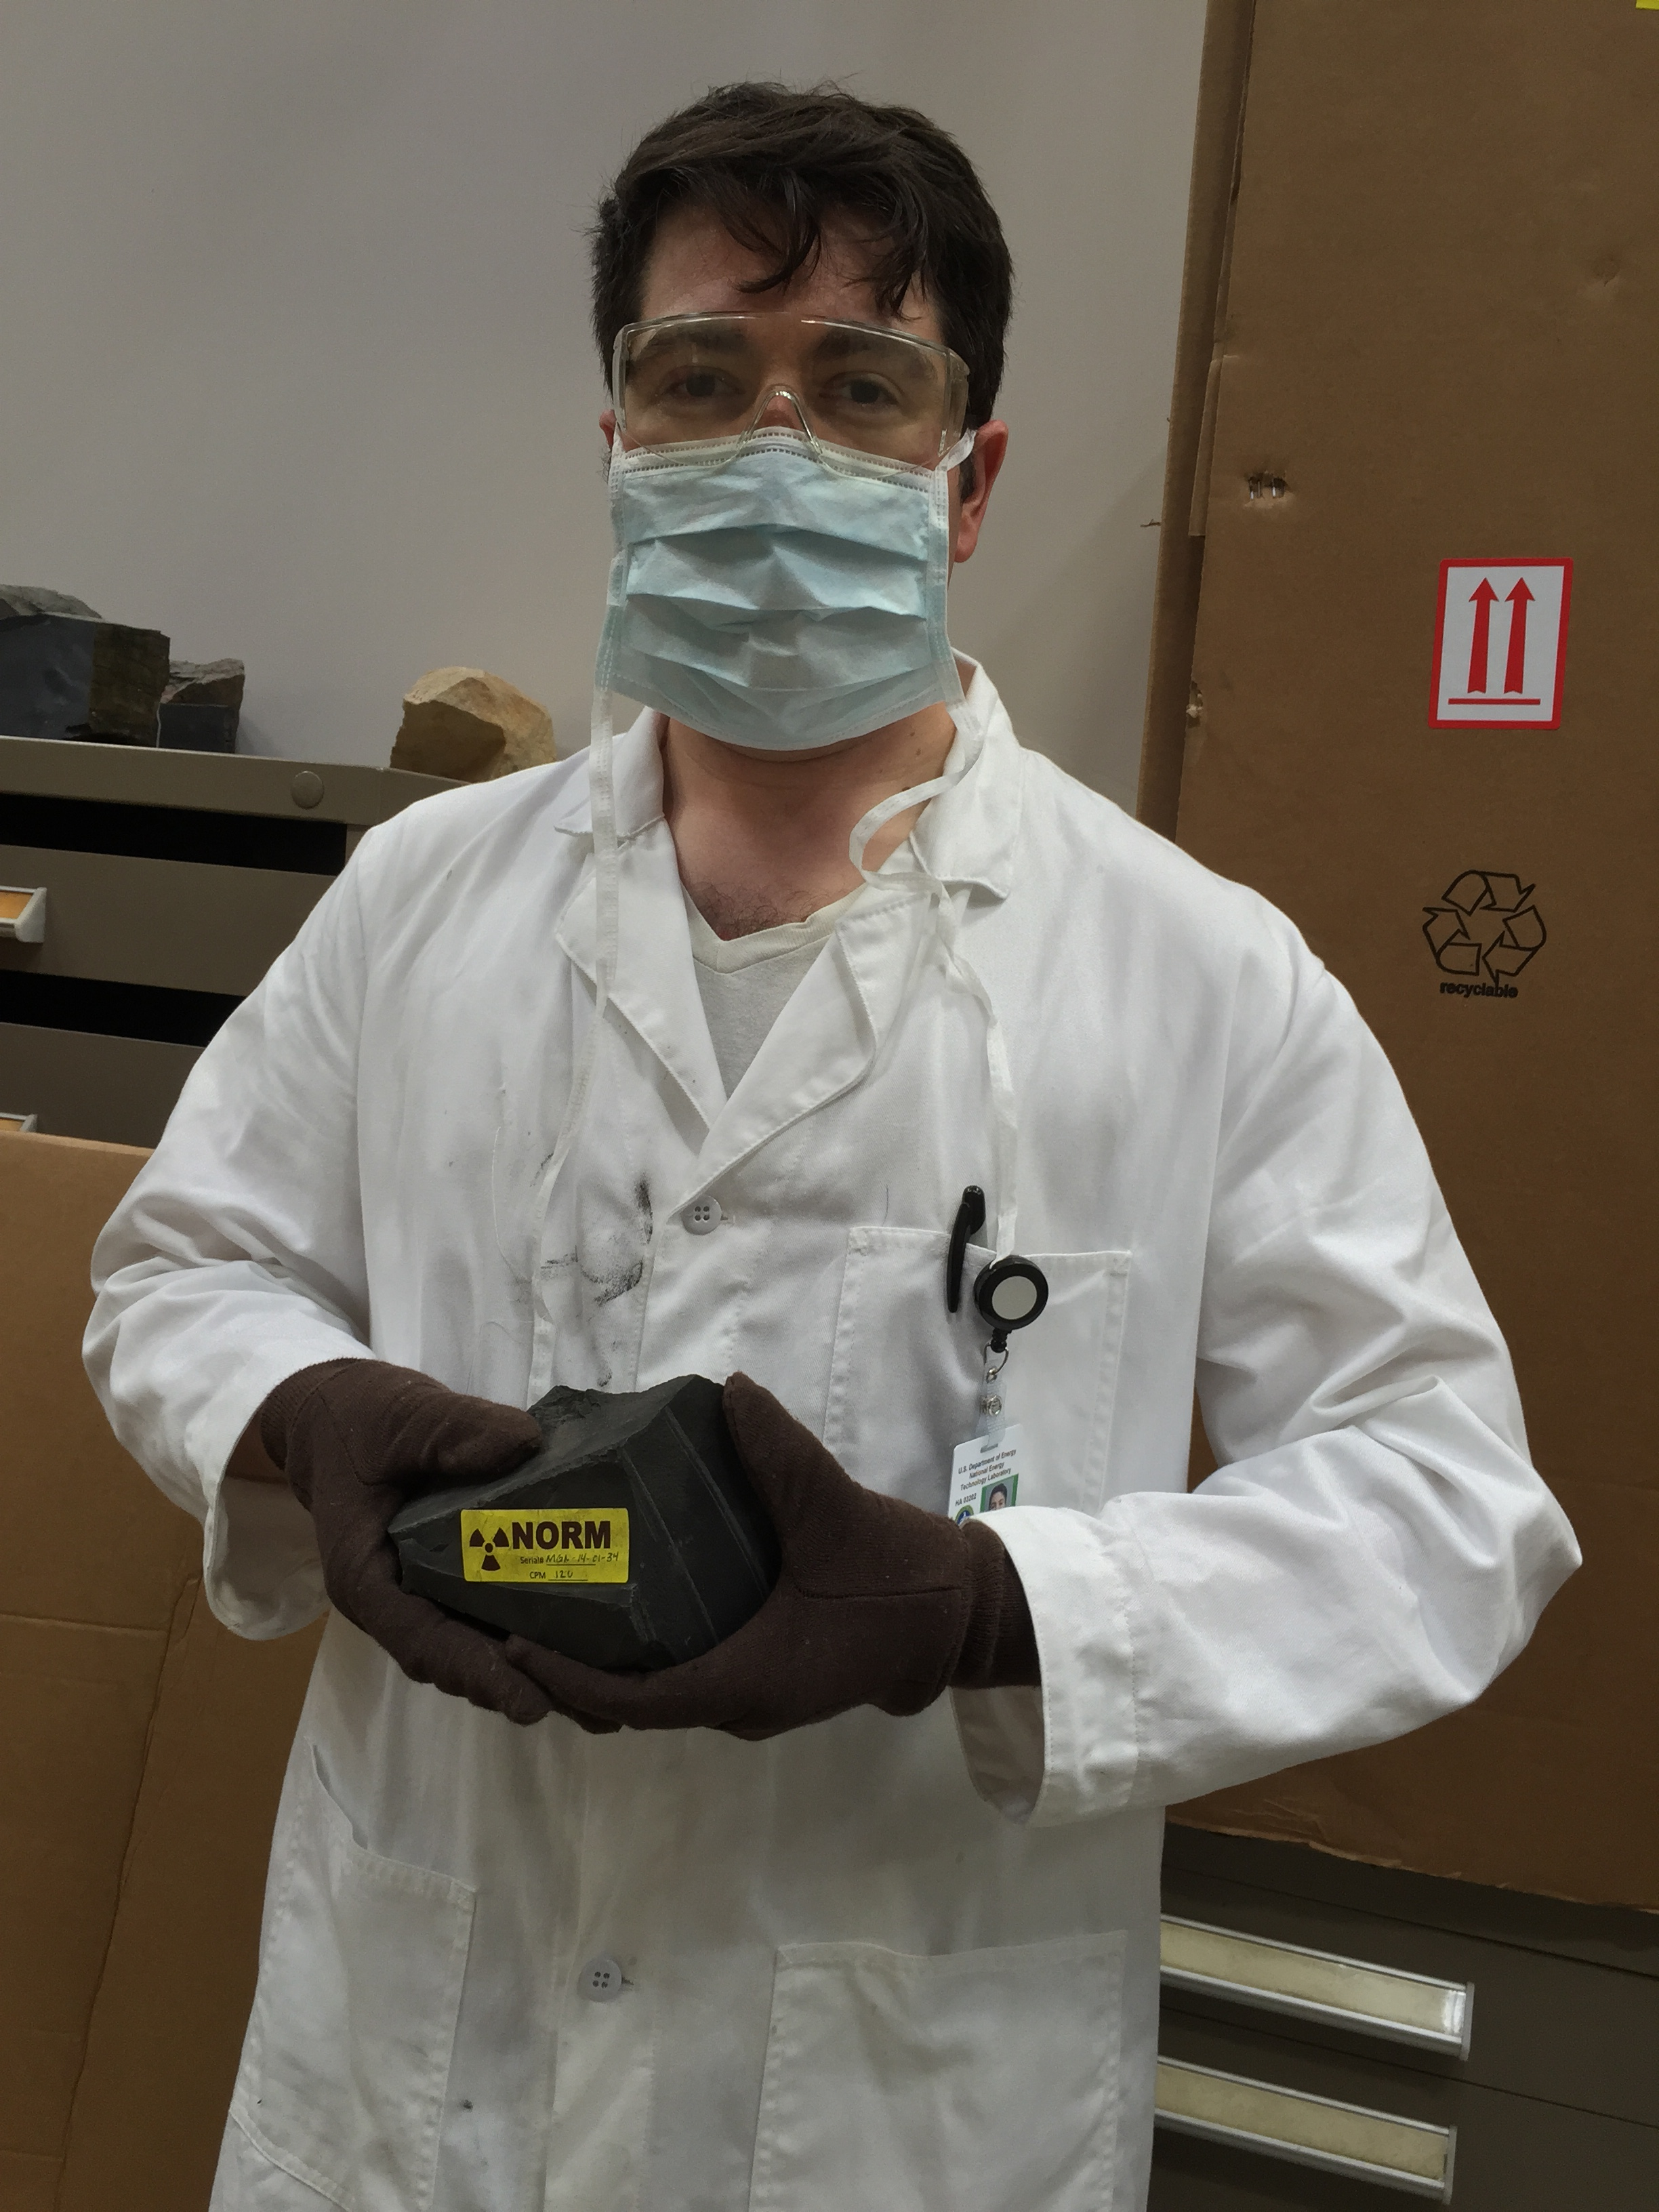 Handling NORM (Naturally Occurring Radioactive Material) at a research facility at NETL (National Energy Technology Laboratory). July 2015.